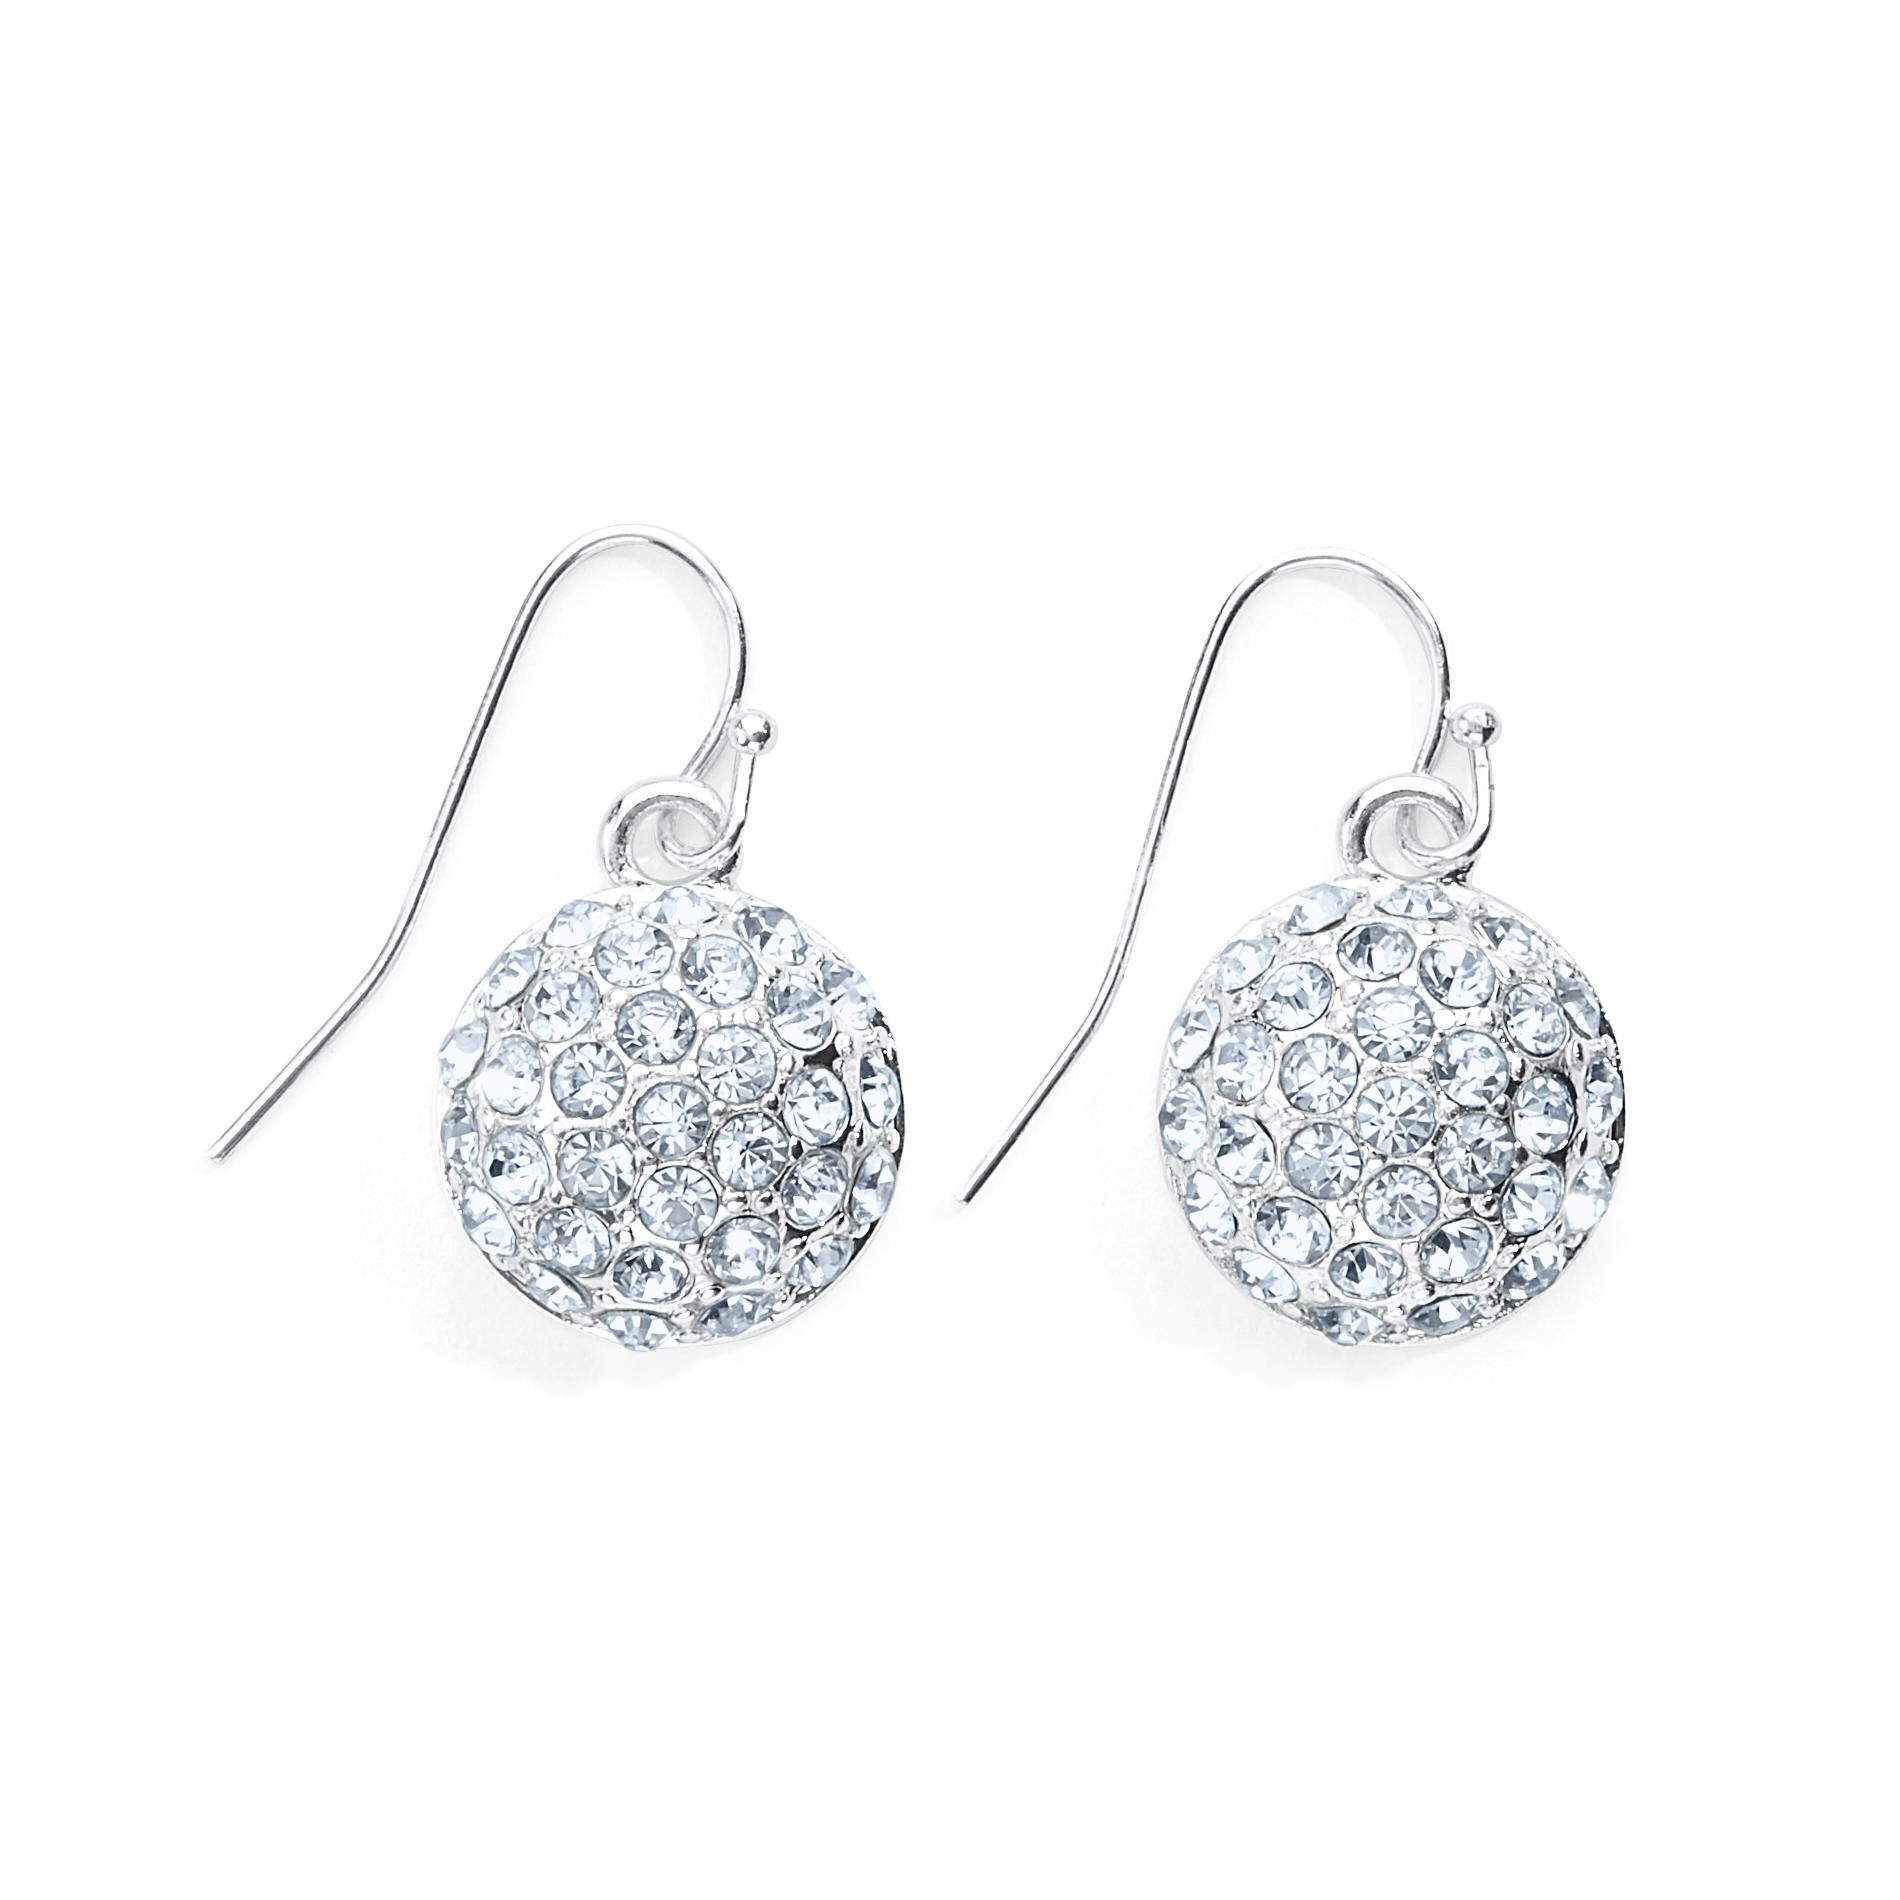 Women's Rhinestone Drop Earrings - Silvertone